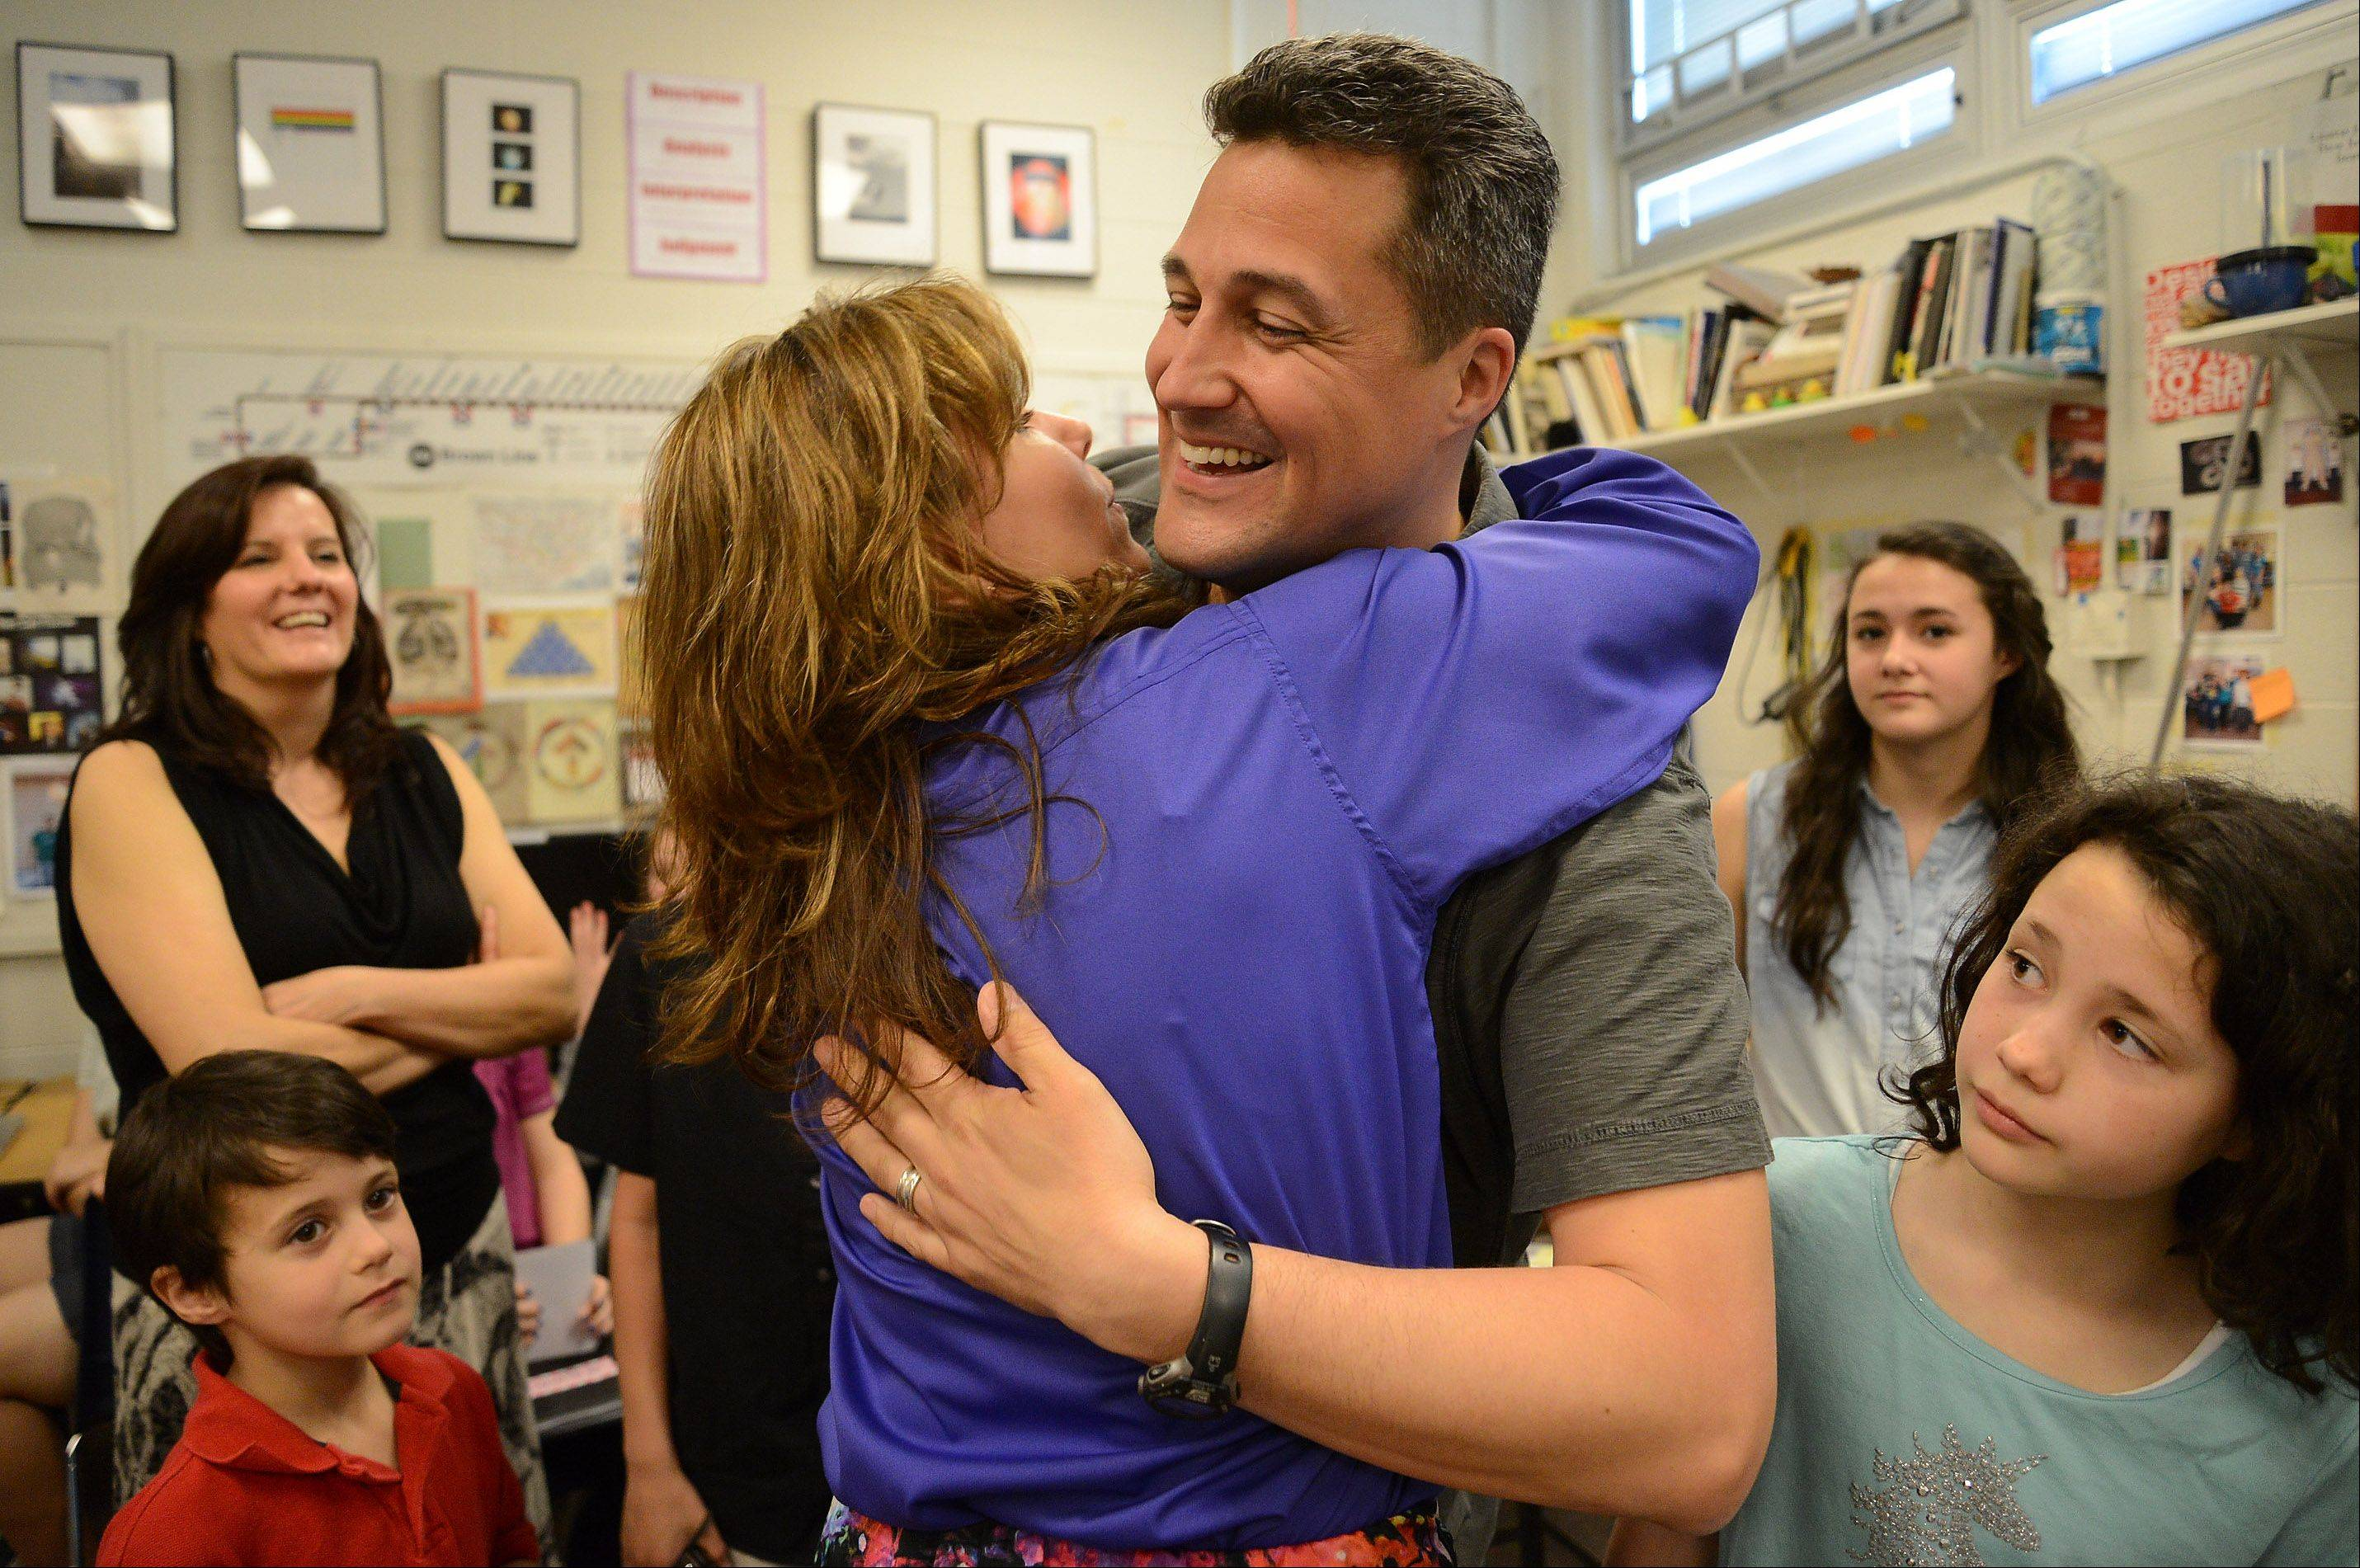 Gregory Regalado, who teaches art, photography and advanced digital imaging at Maine West High School in Des Plaines, gets a hug from Principal Audrey Haugan after being surprised in his classroom Wednesday by Golden Apple representatives.